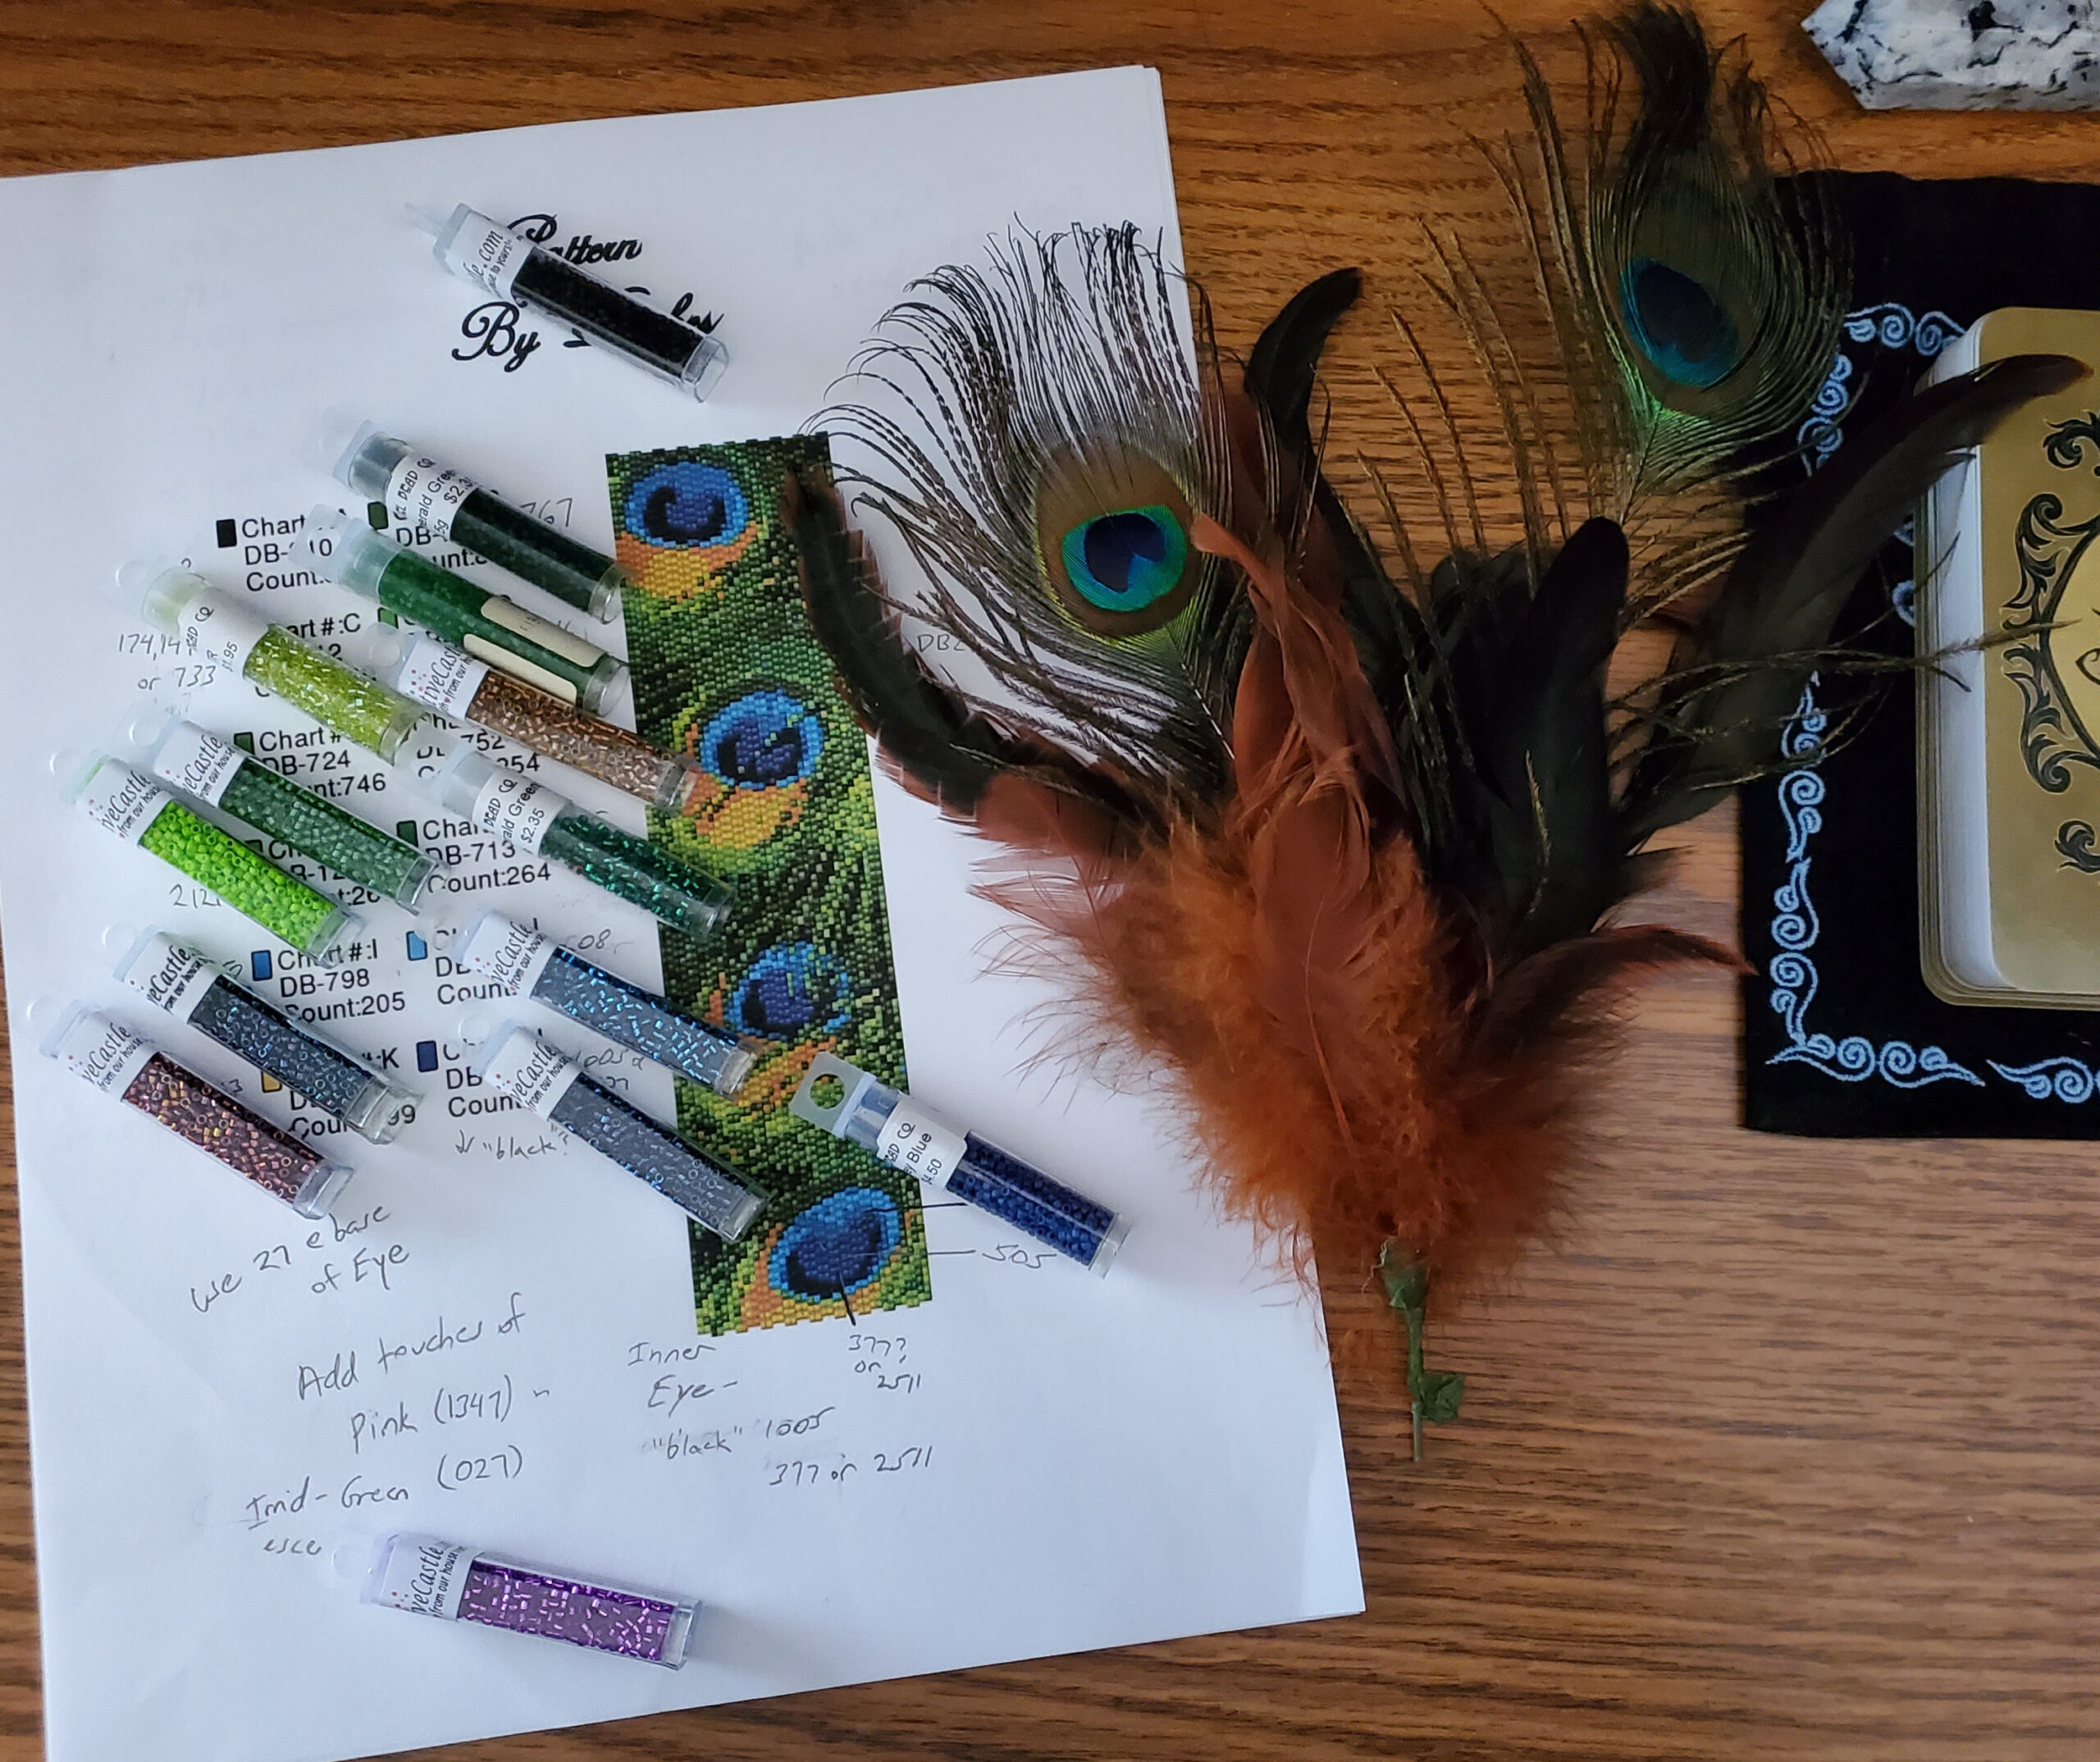 Chaos in the Bead Cave – How to Modify Colors in an Existing Pattern